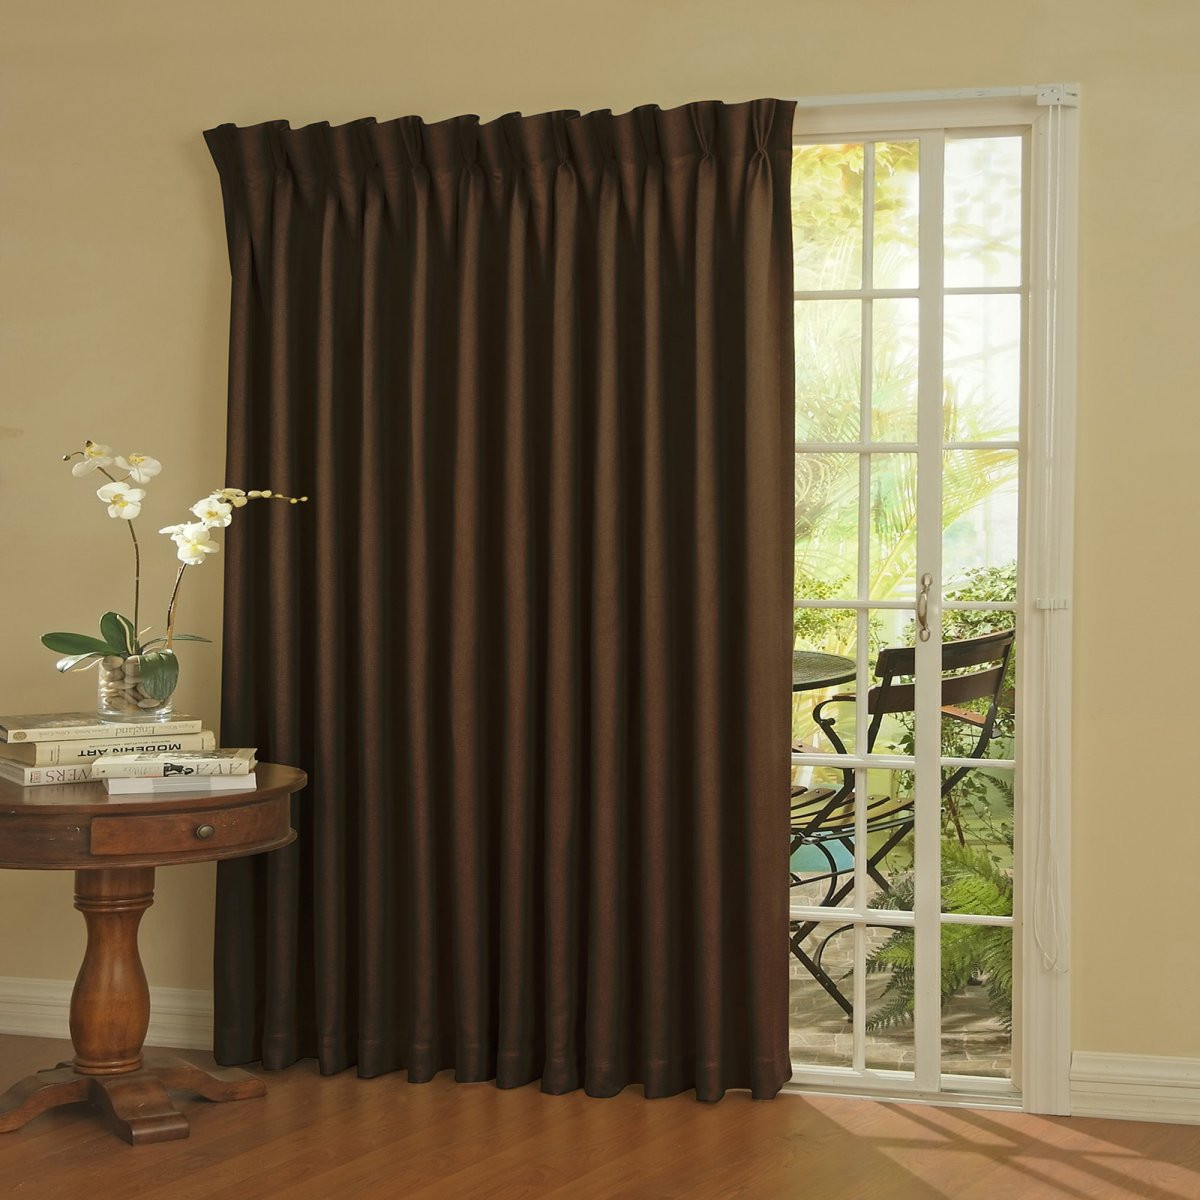 Best ideas about Patio Door Curtain Ideas . Save or Pin Curtain Ideas for Sliding Glass Door Now.